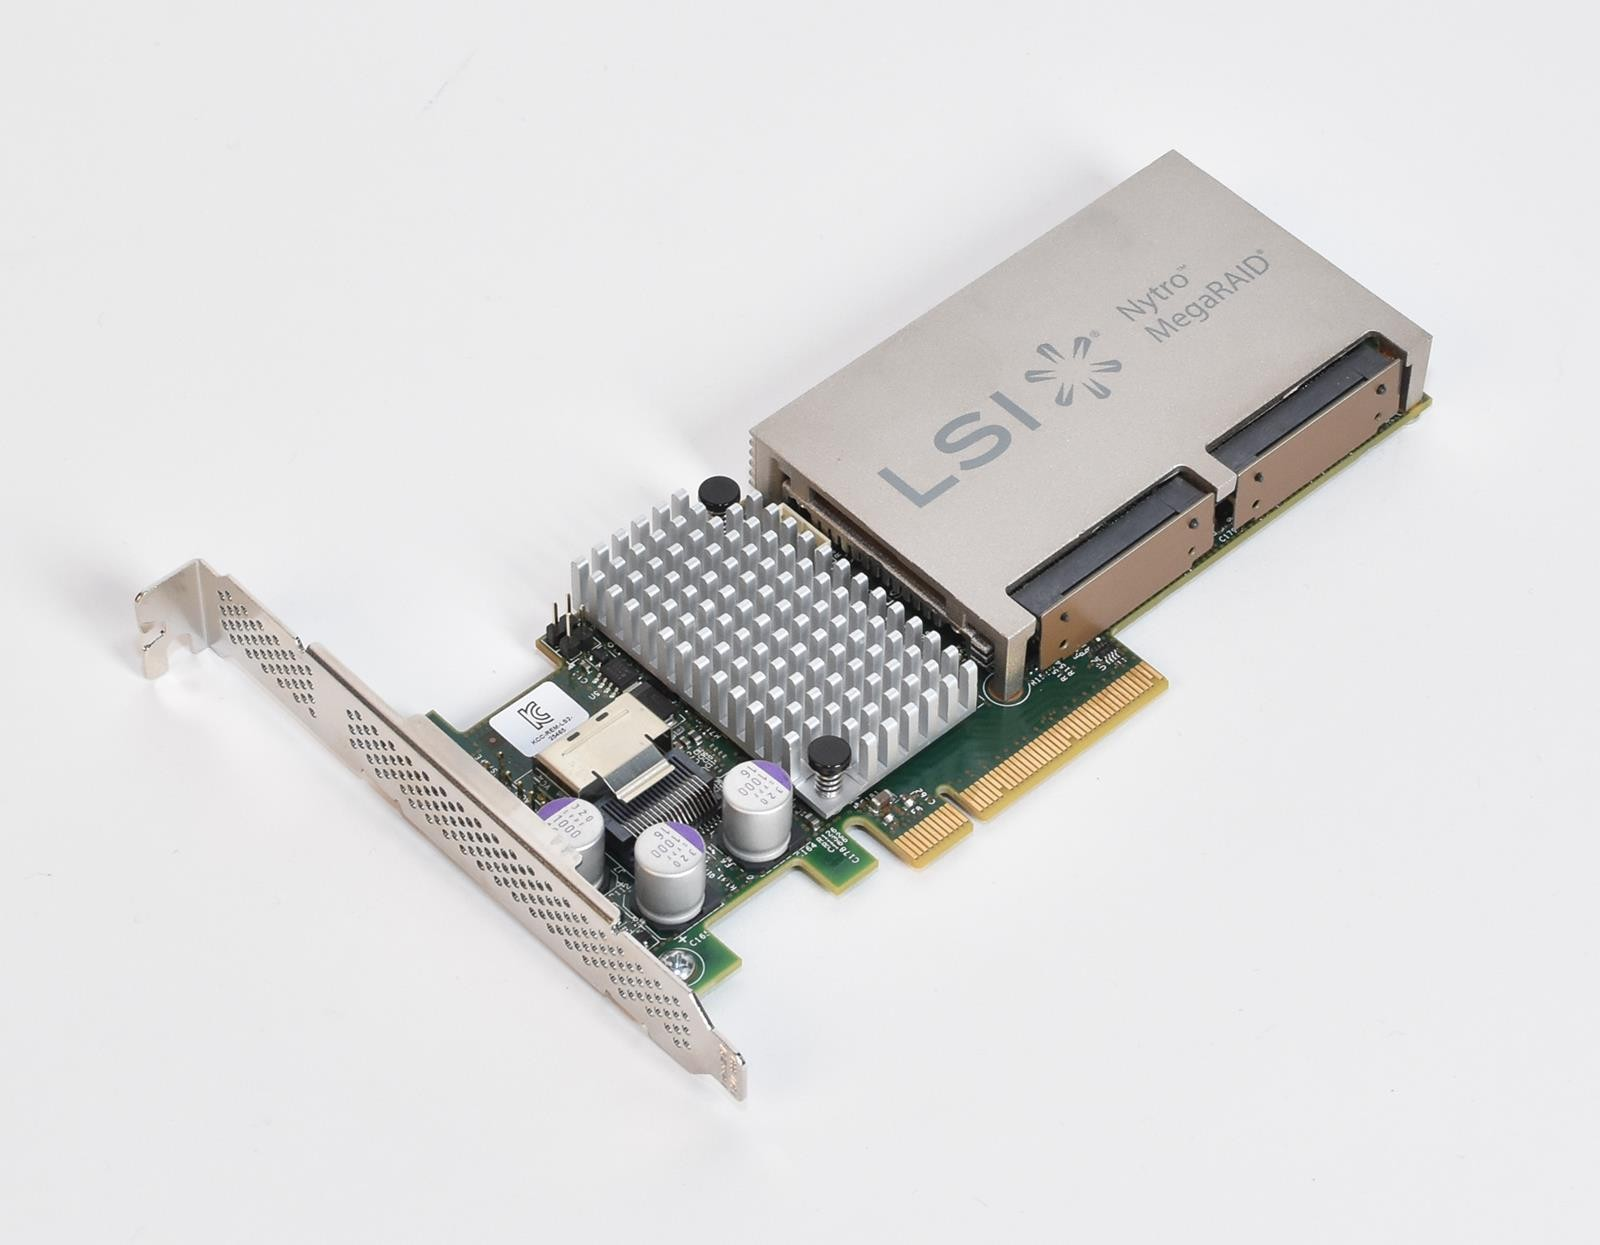 LSI NMR8110-4i Nytro Megaraid 4-port 6Gb/s SAS/SATA